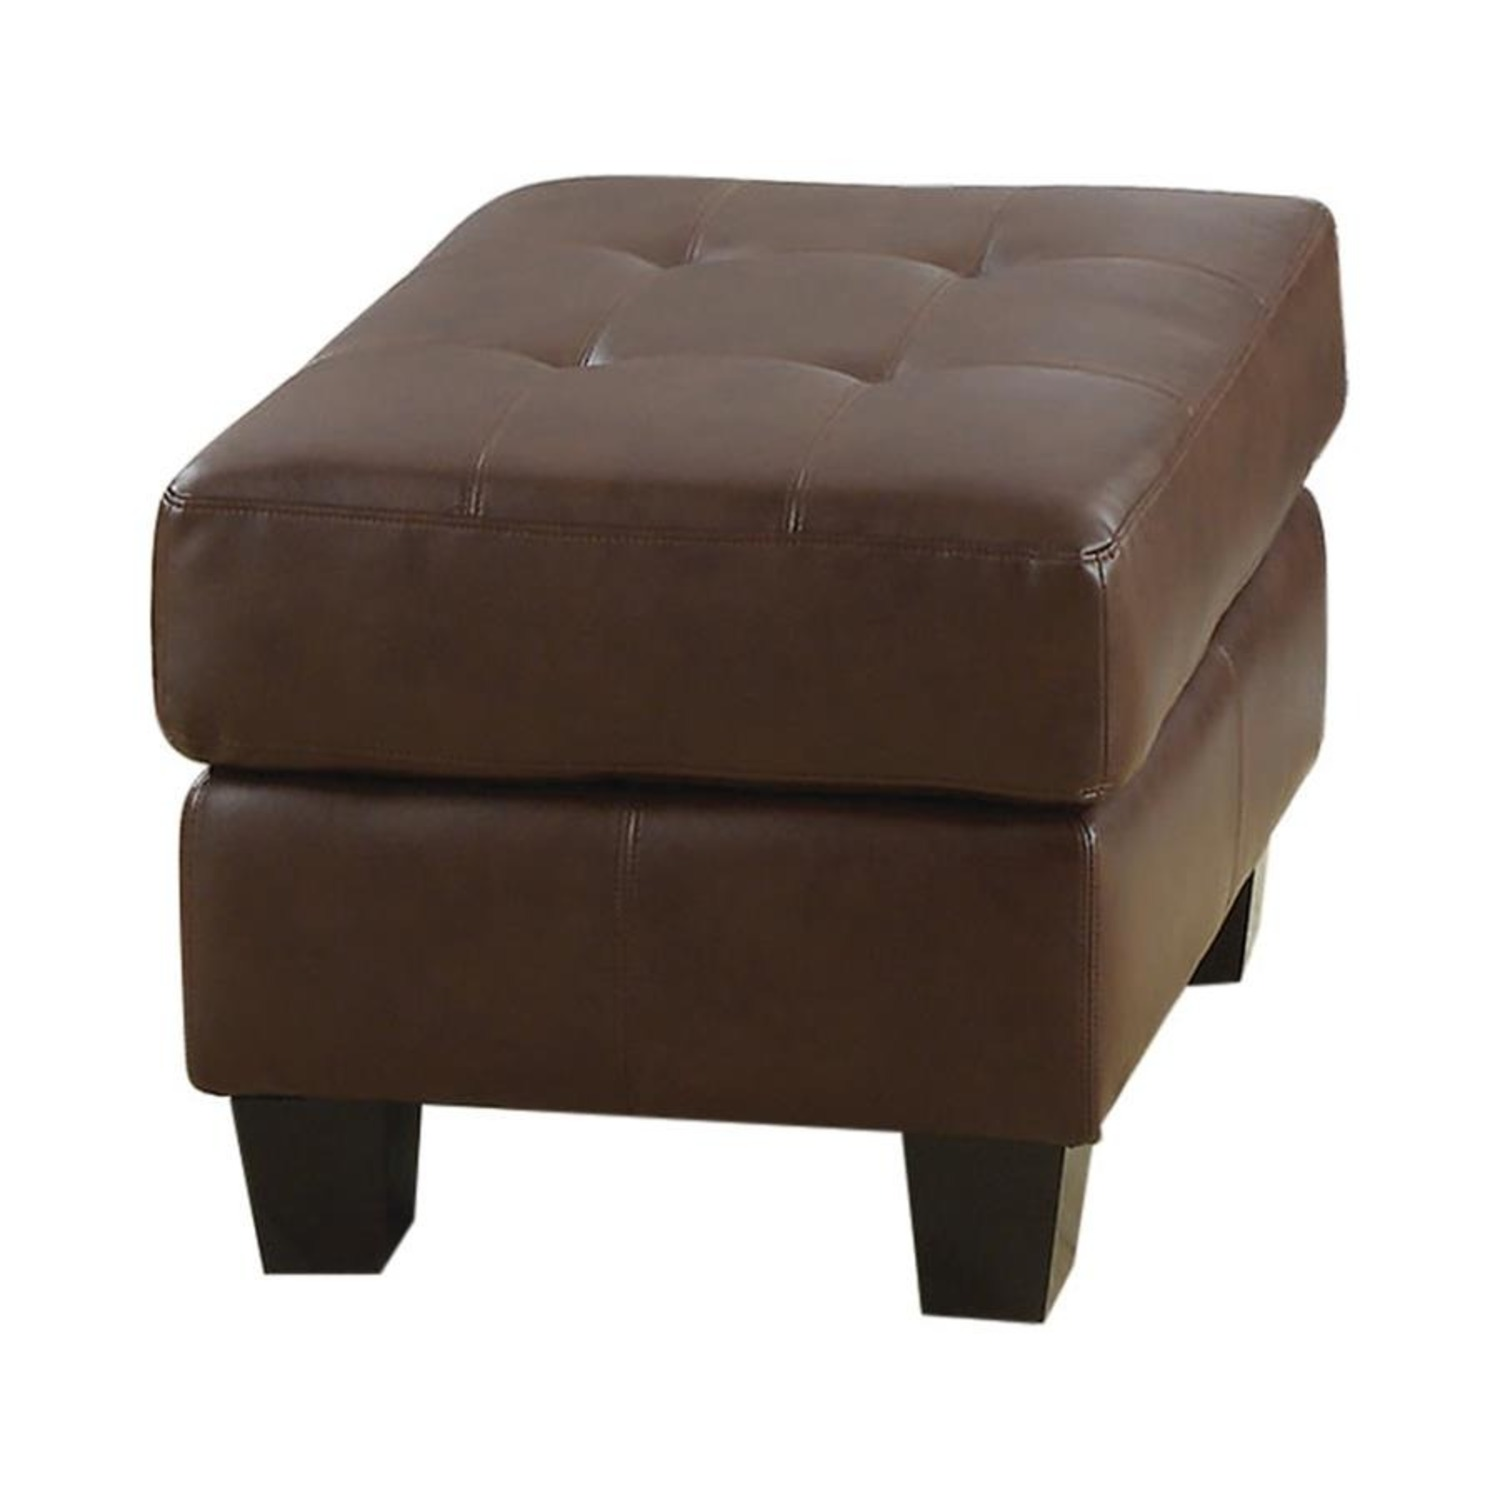 Ottoman In Brown Padded Breathable Leatherette - image-0